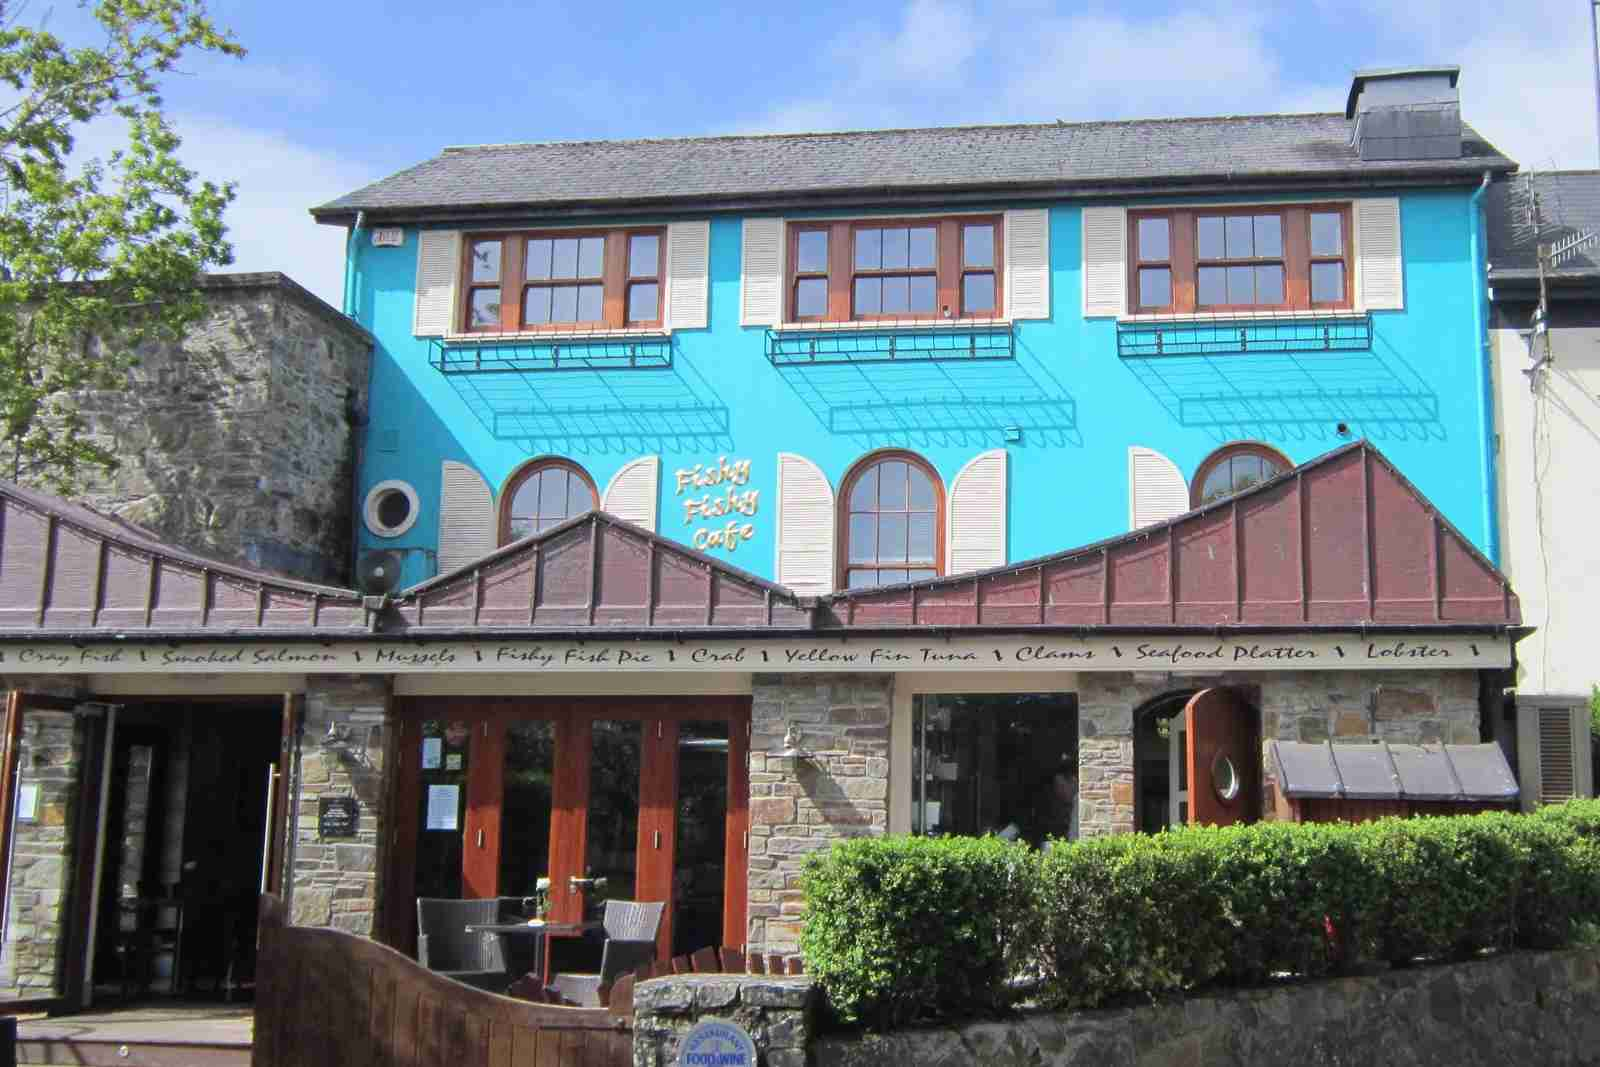 The Fishy Fishy restaurant in Kinsale. (Photo by Vickie Easton/Pinterest)